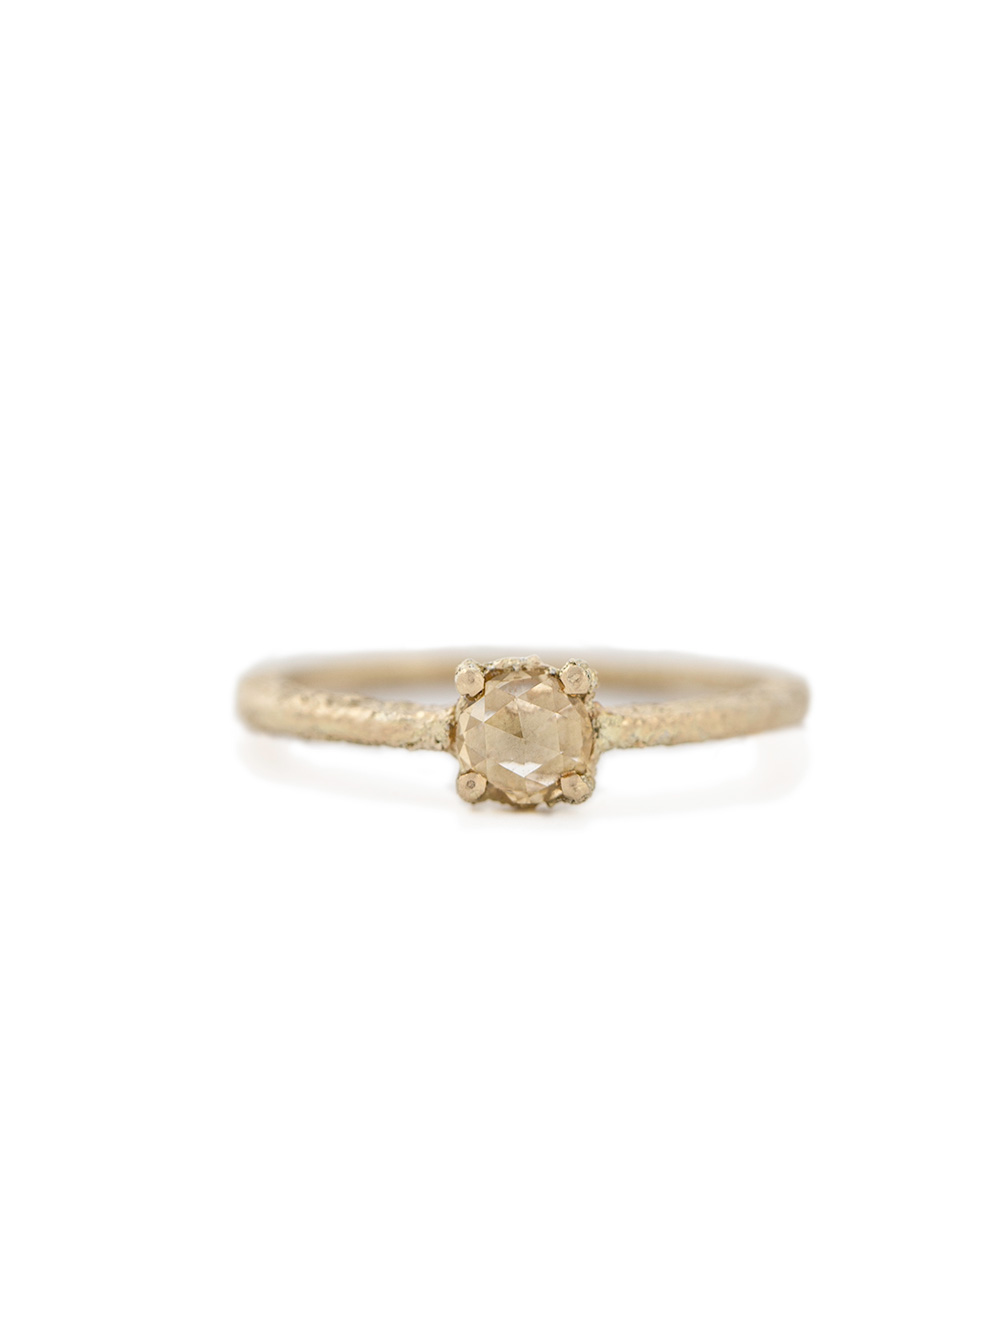 Rose cut yellow diamond ring in yellow gold, £1260